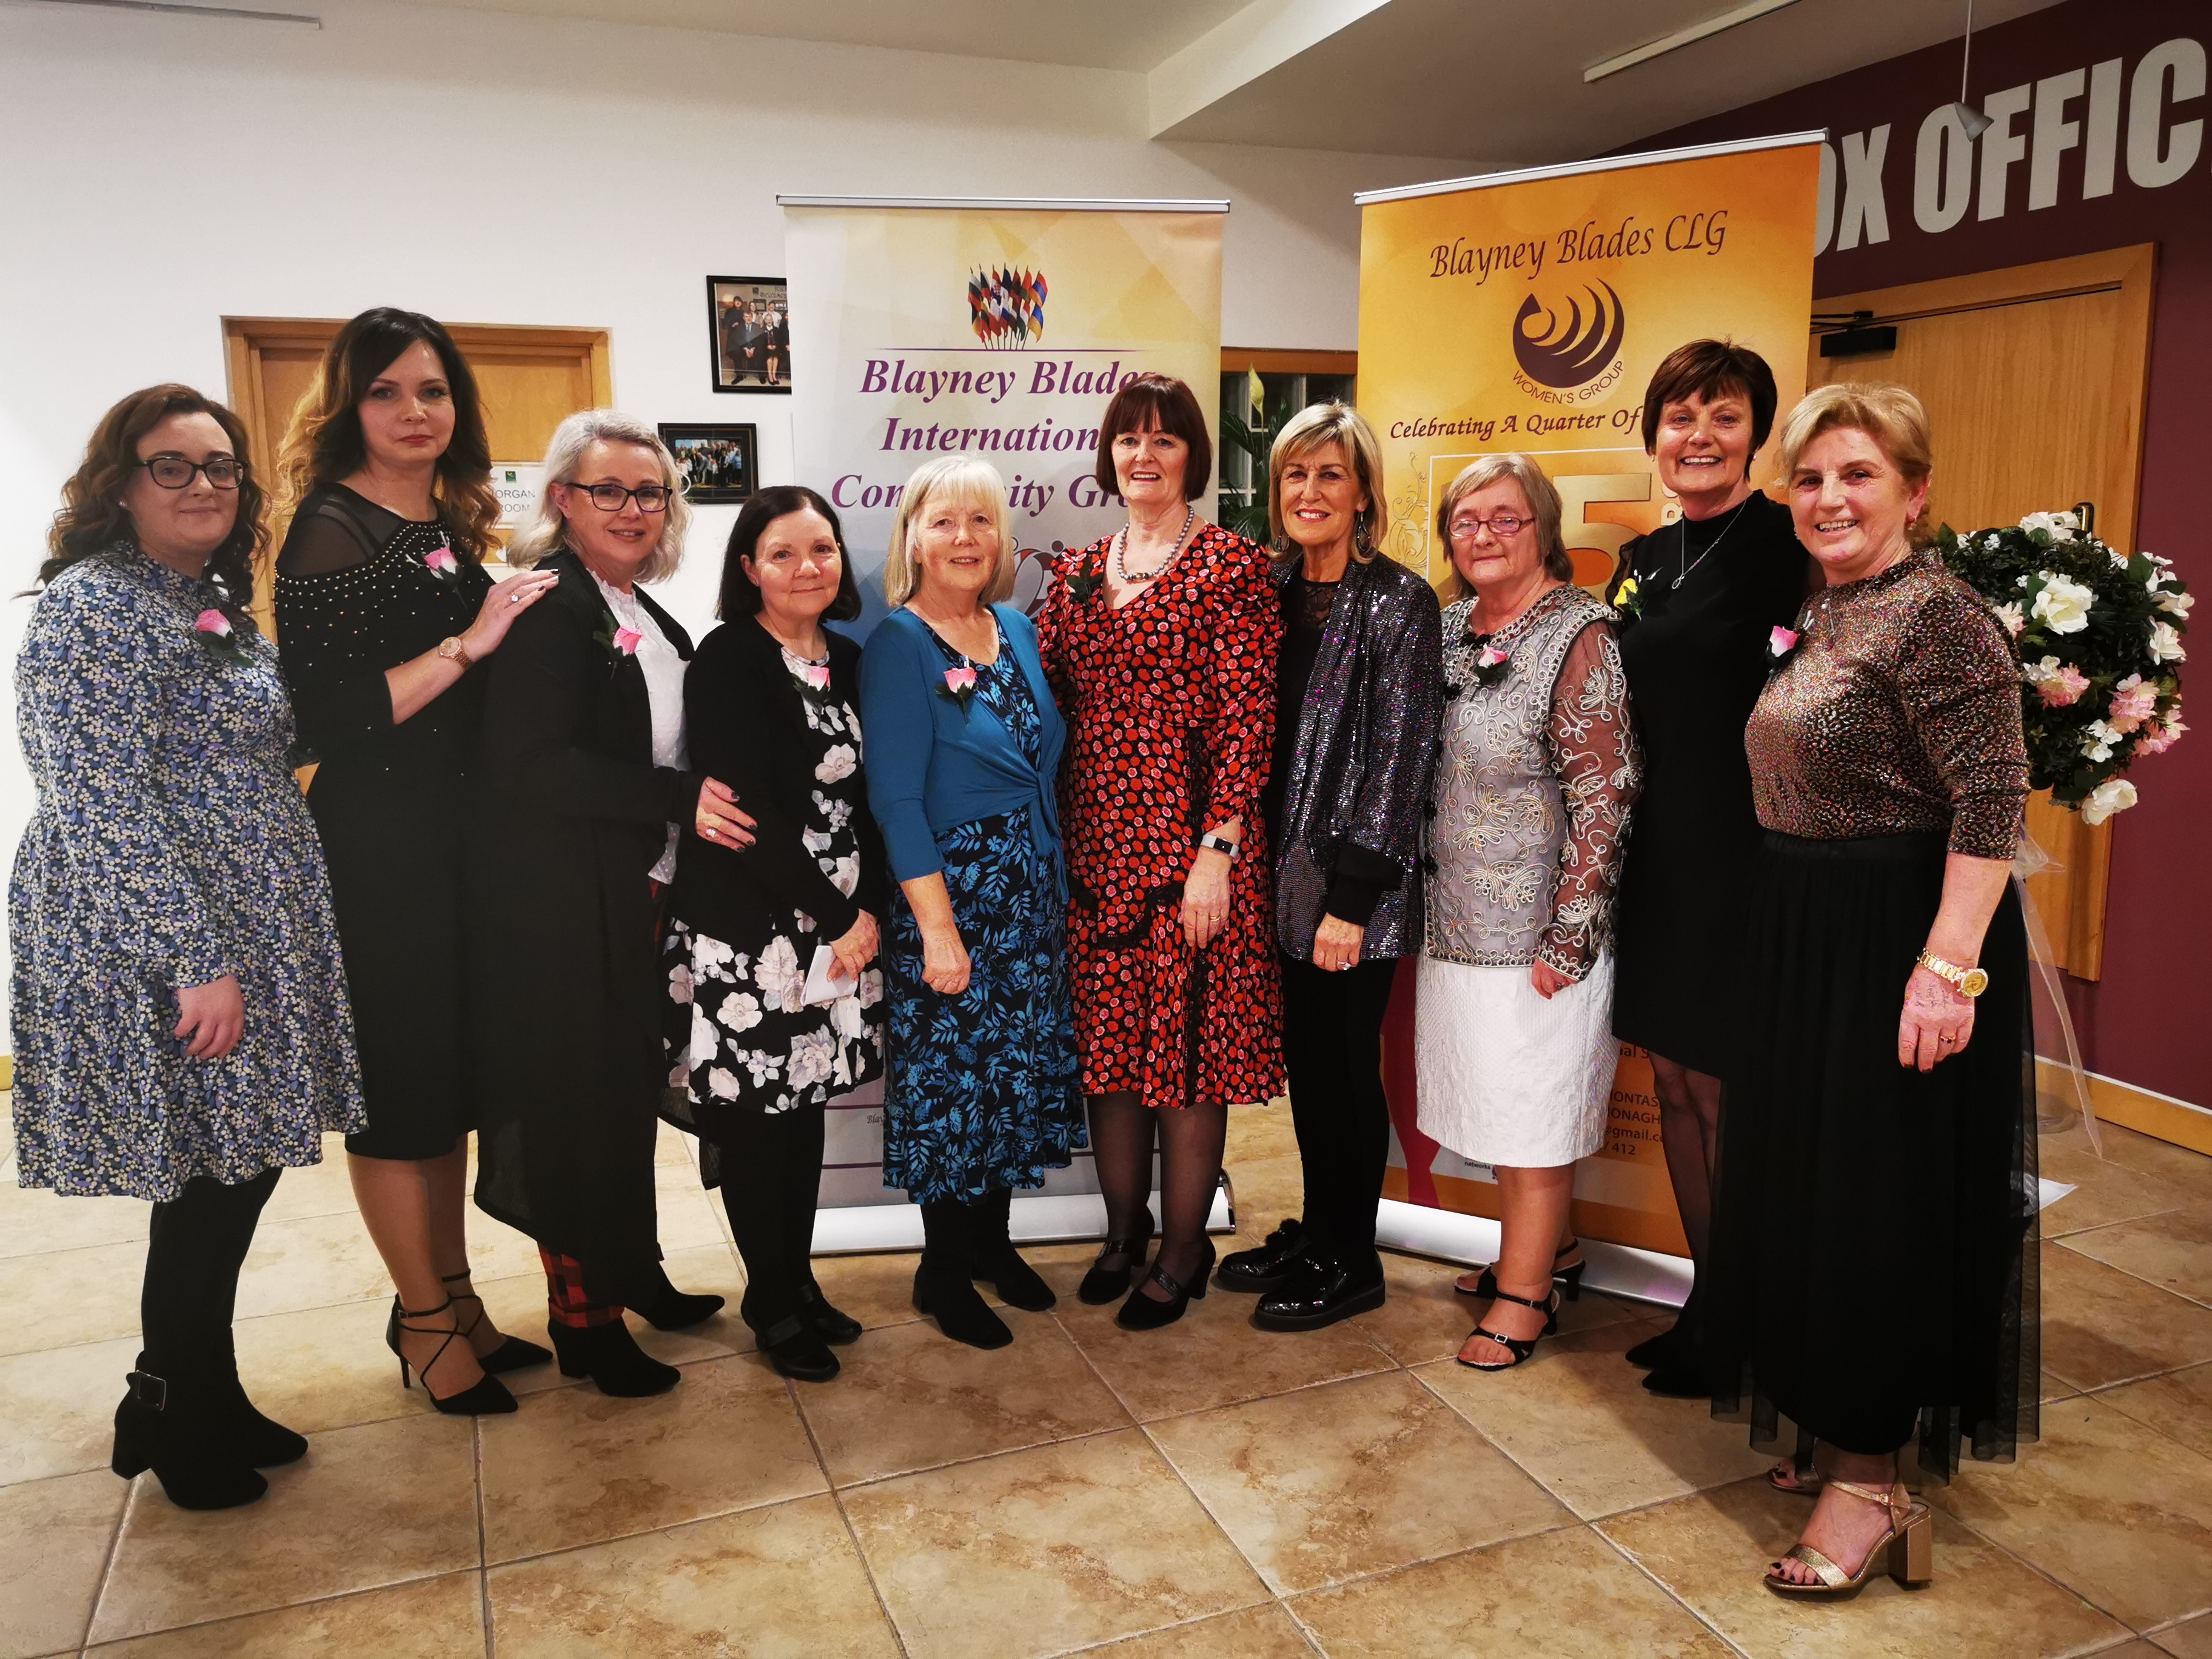 Monaghan Women - Connecting Singles